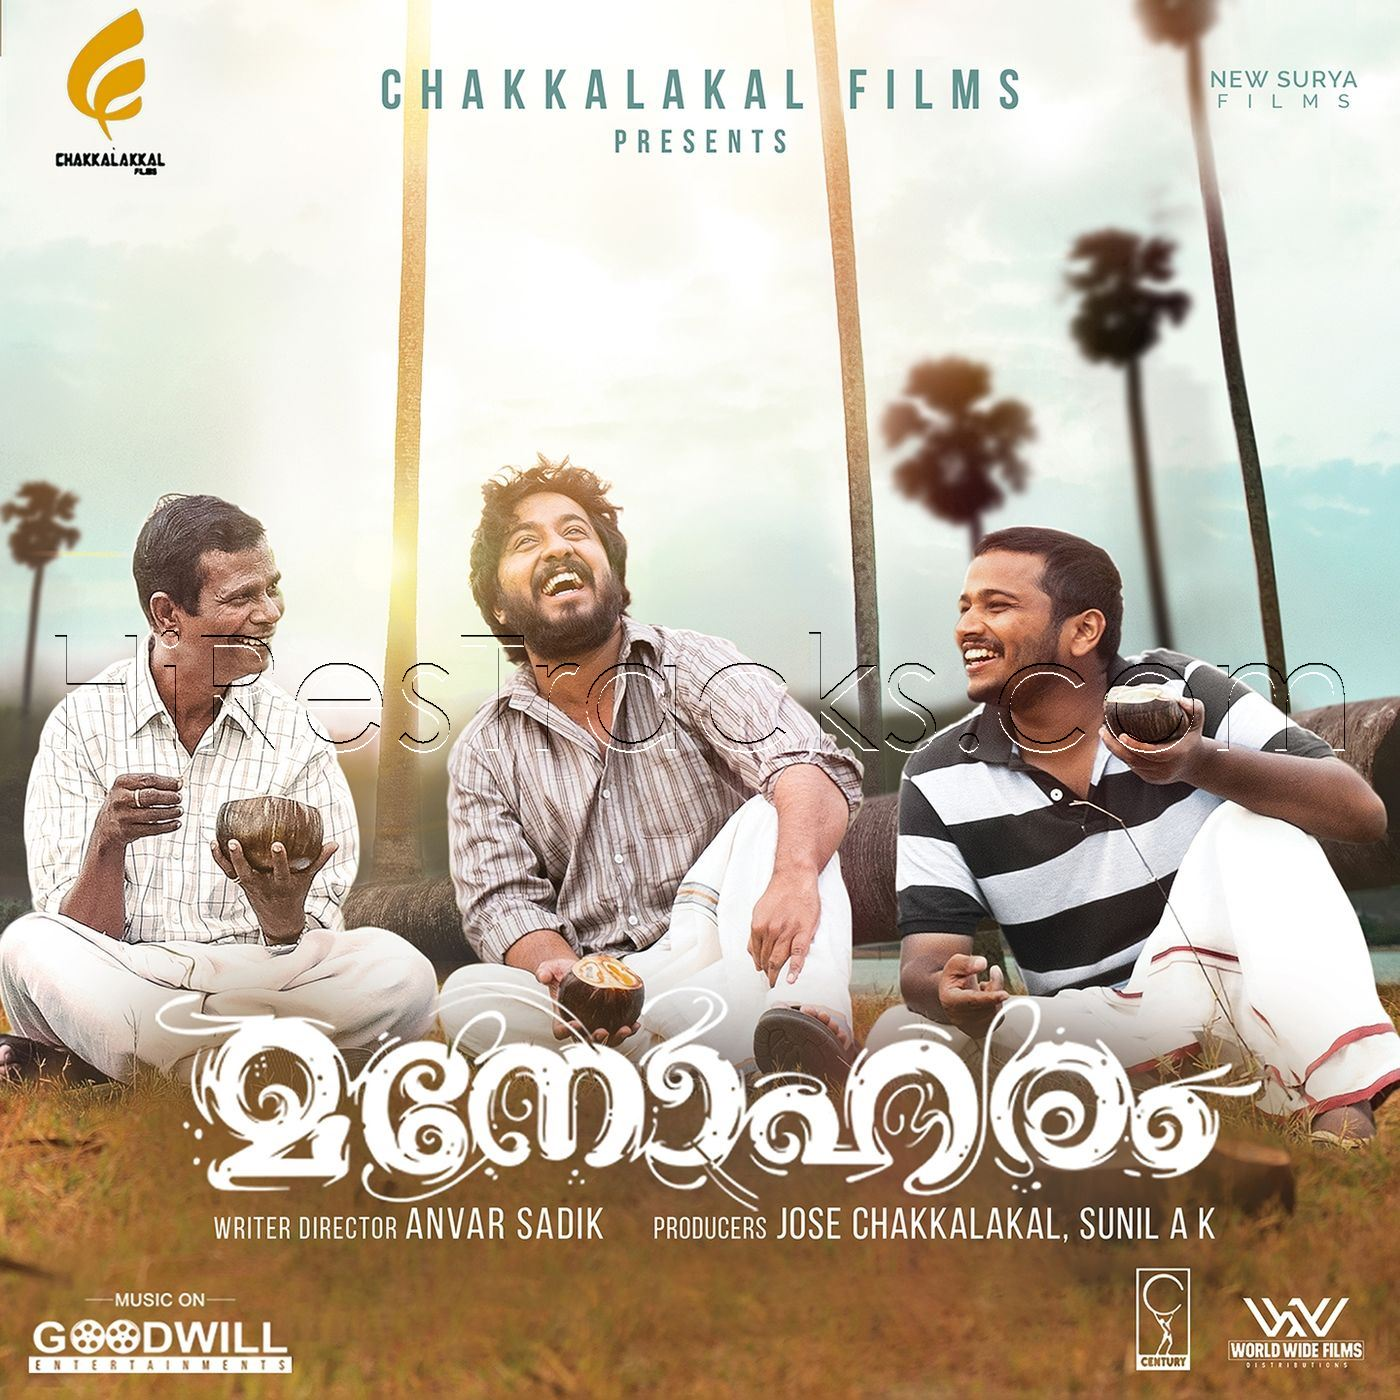 Manoharam (2019) (Sanjeev T) (Goodwill Entertainments) [Digital-RIP-FLAC]